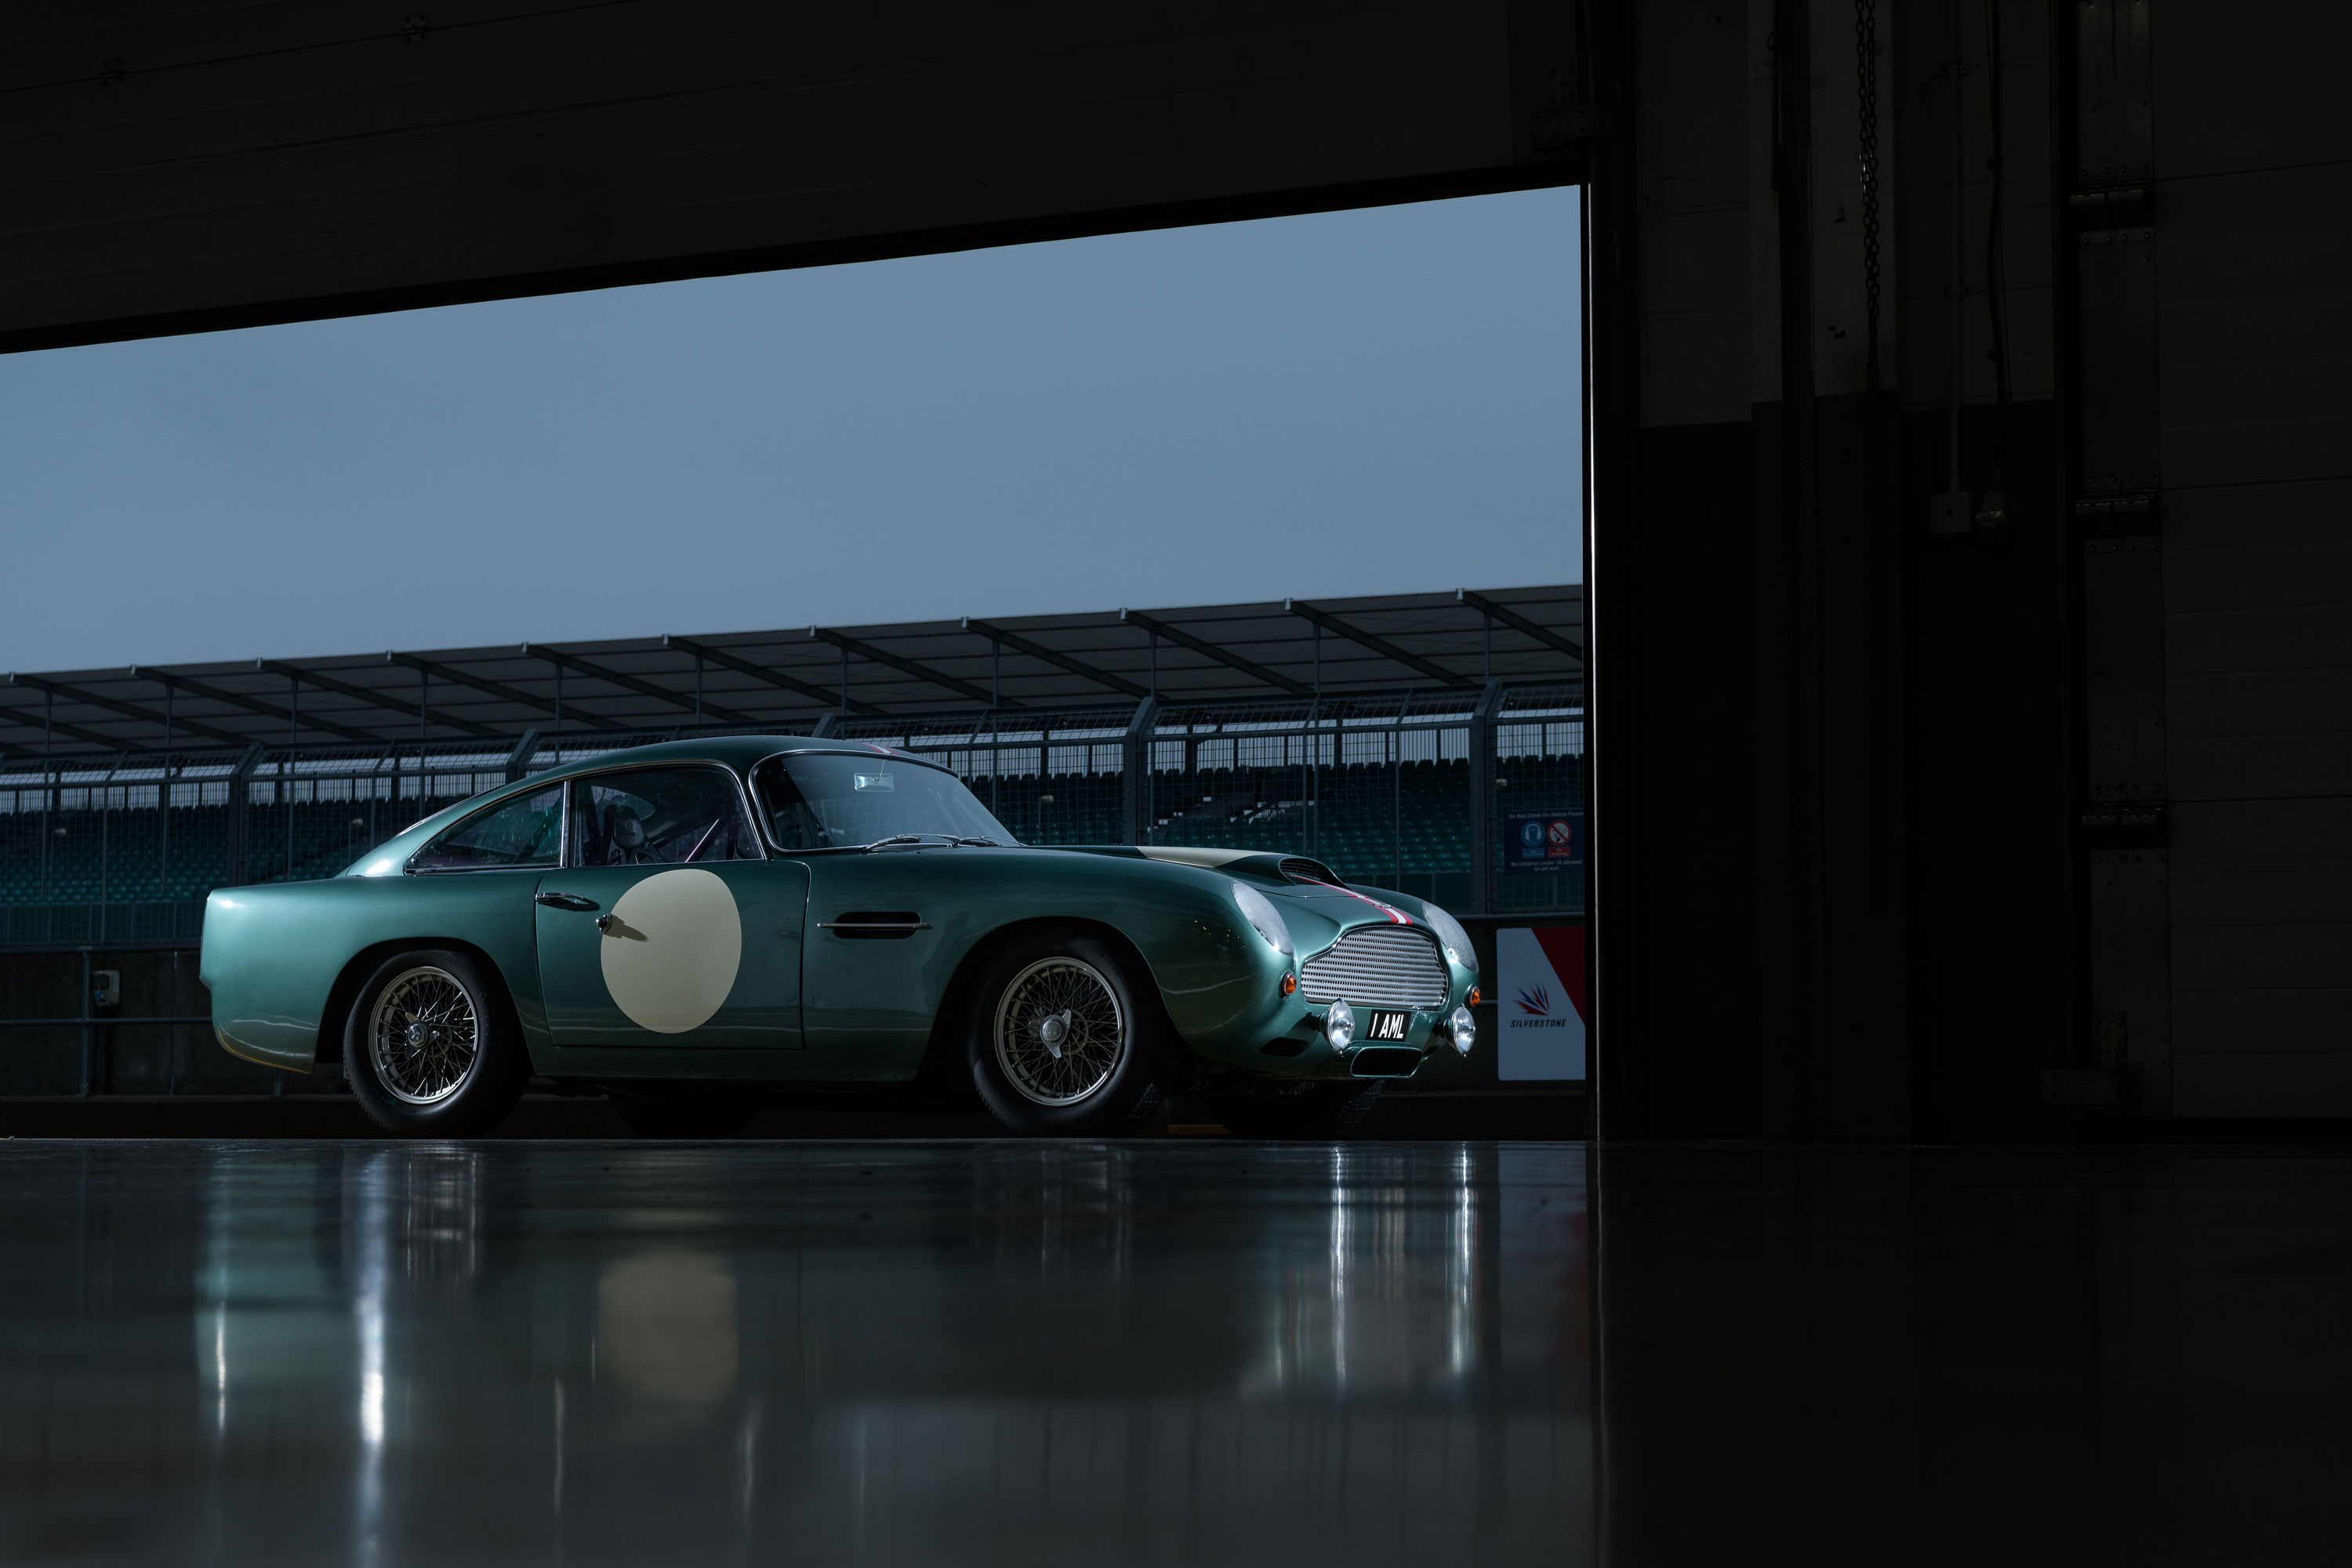 Aston Martin DB4 GT in the paddock after sunset